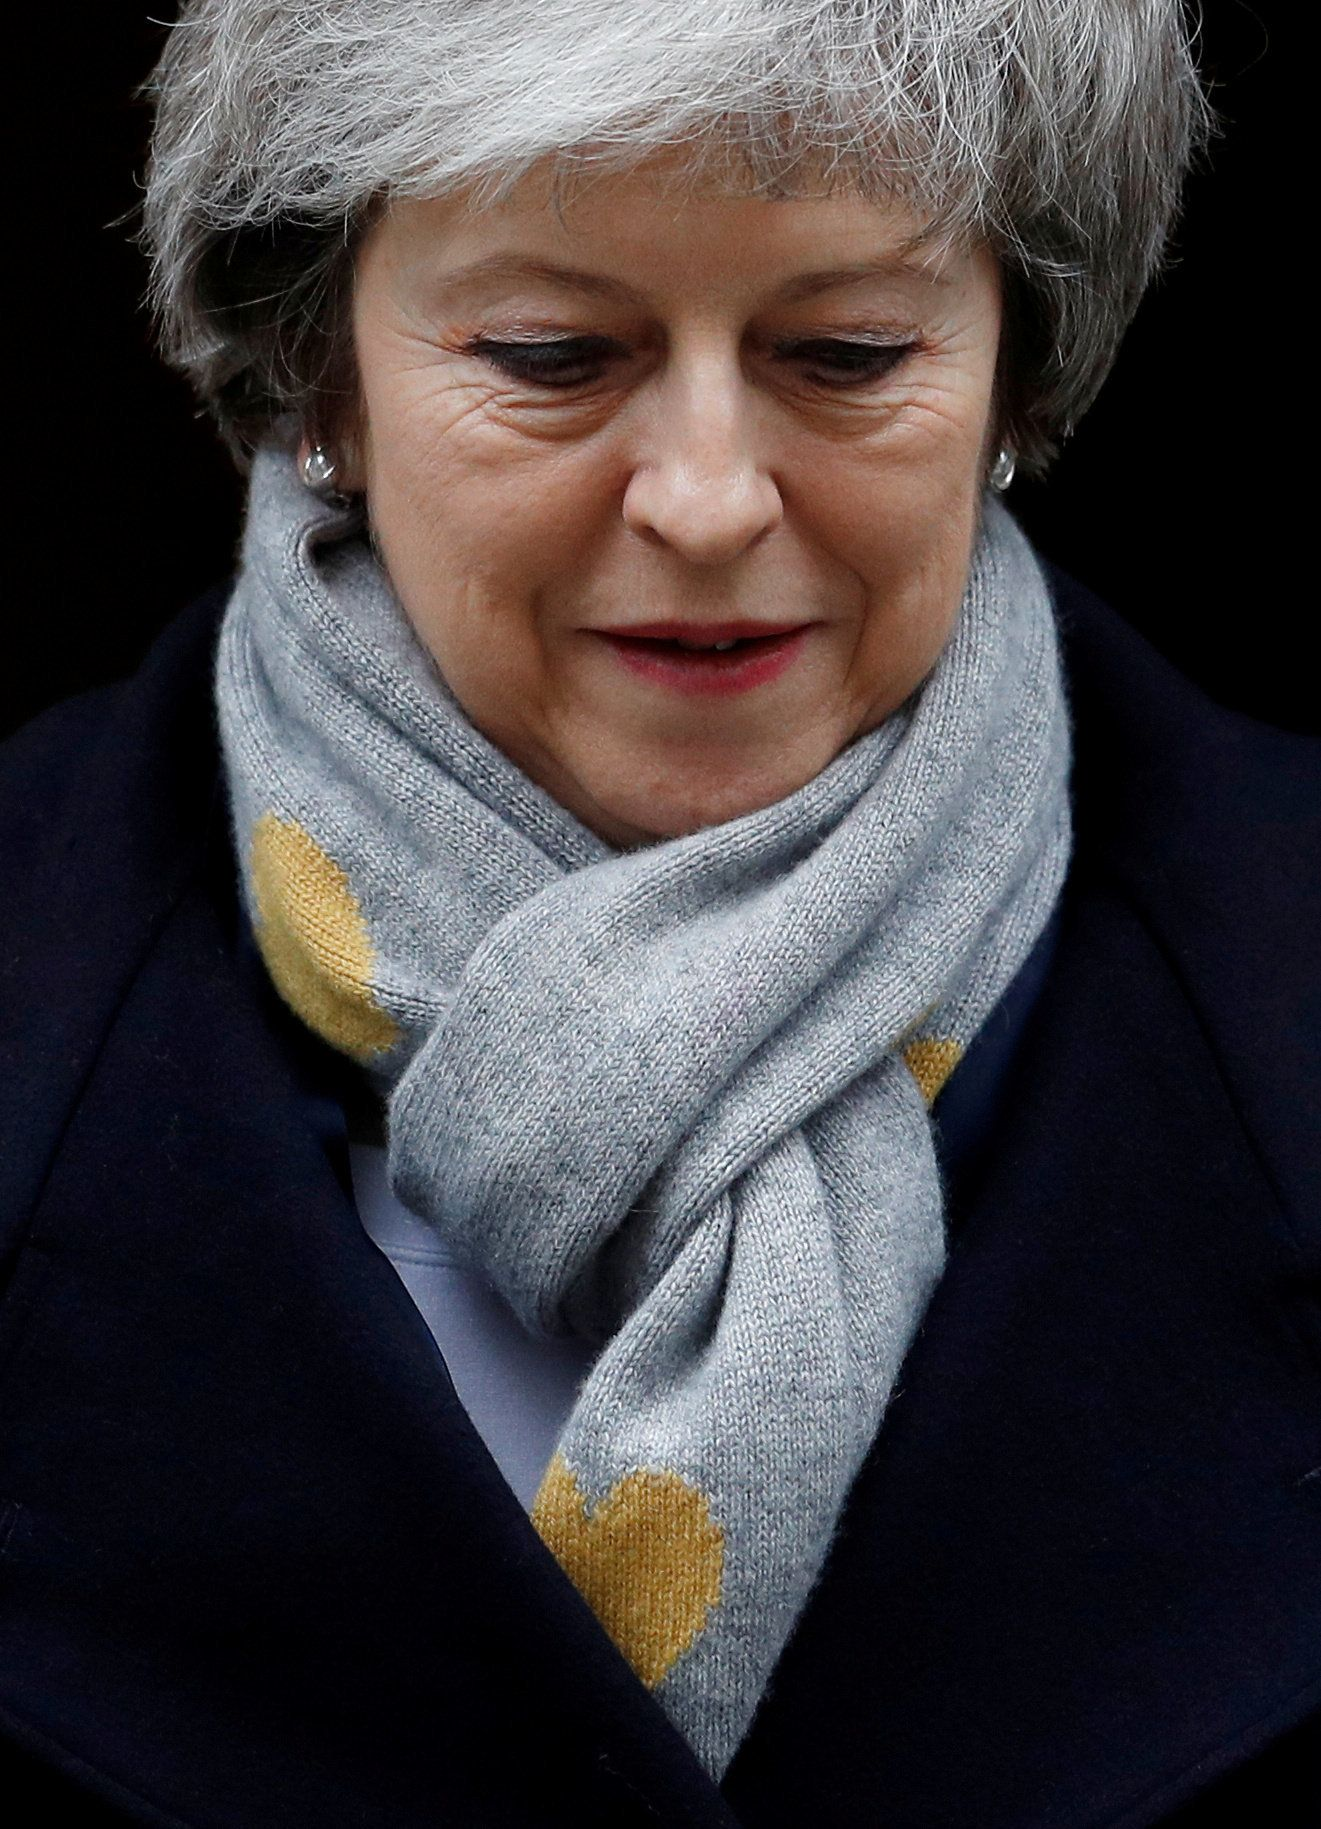 British PM's Brexit Deal Rejected By Massive